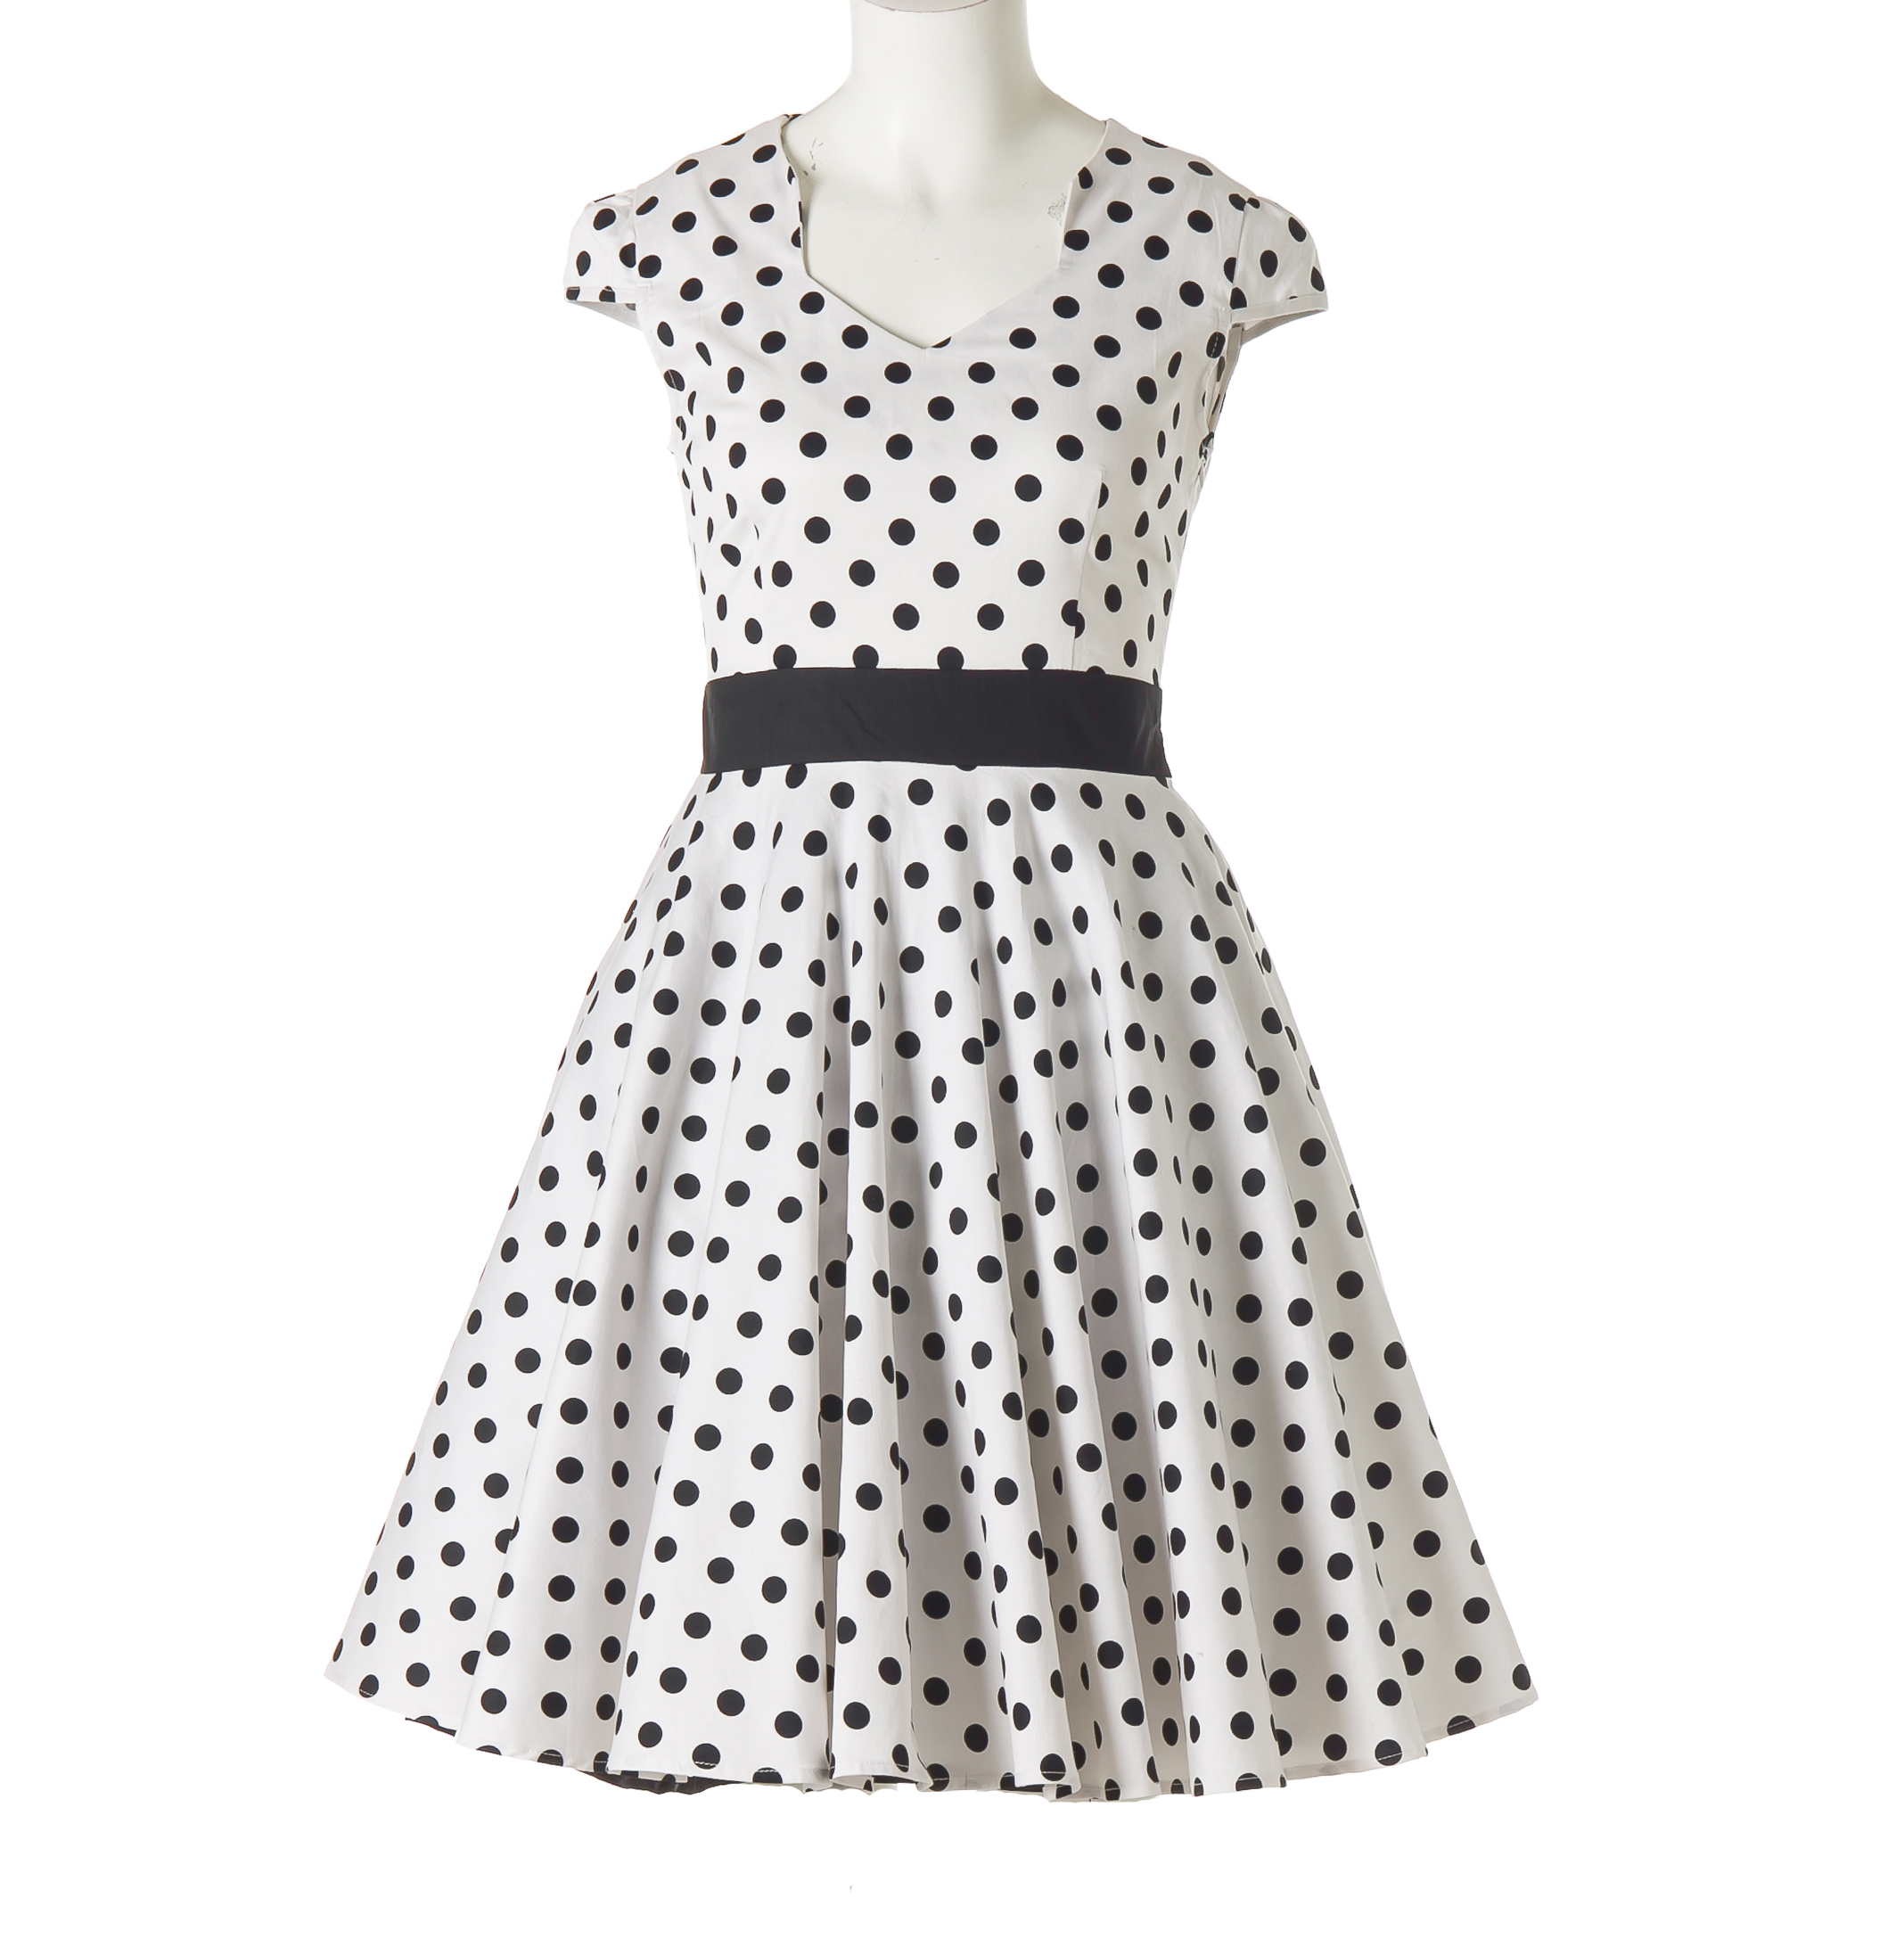 Compare Prices on Dress 1940s Style- Online Shopping/Buy Low Price ...